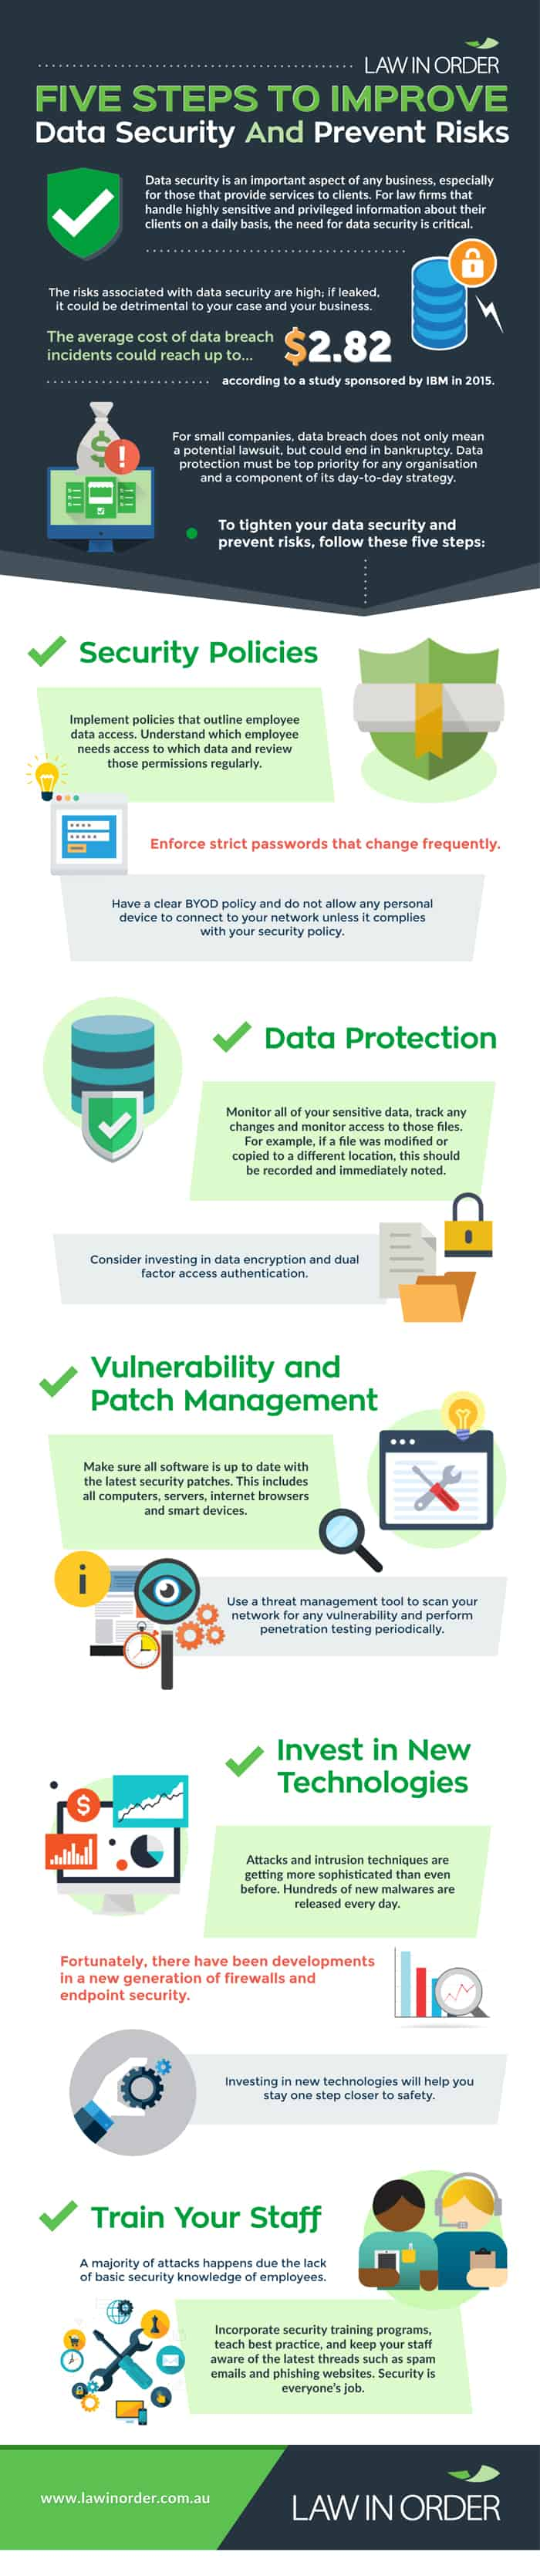 five steps to improve data security